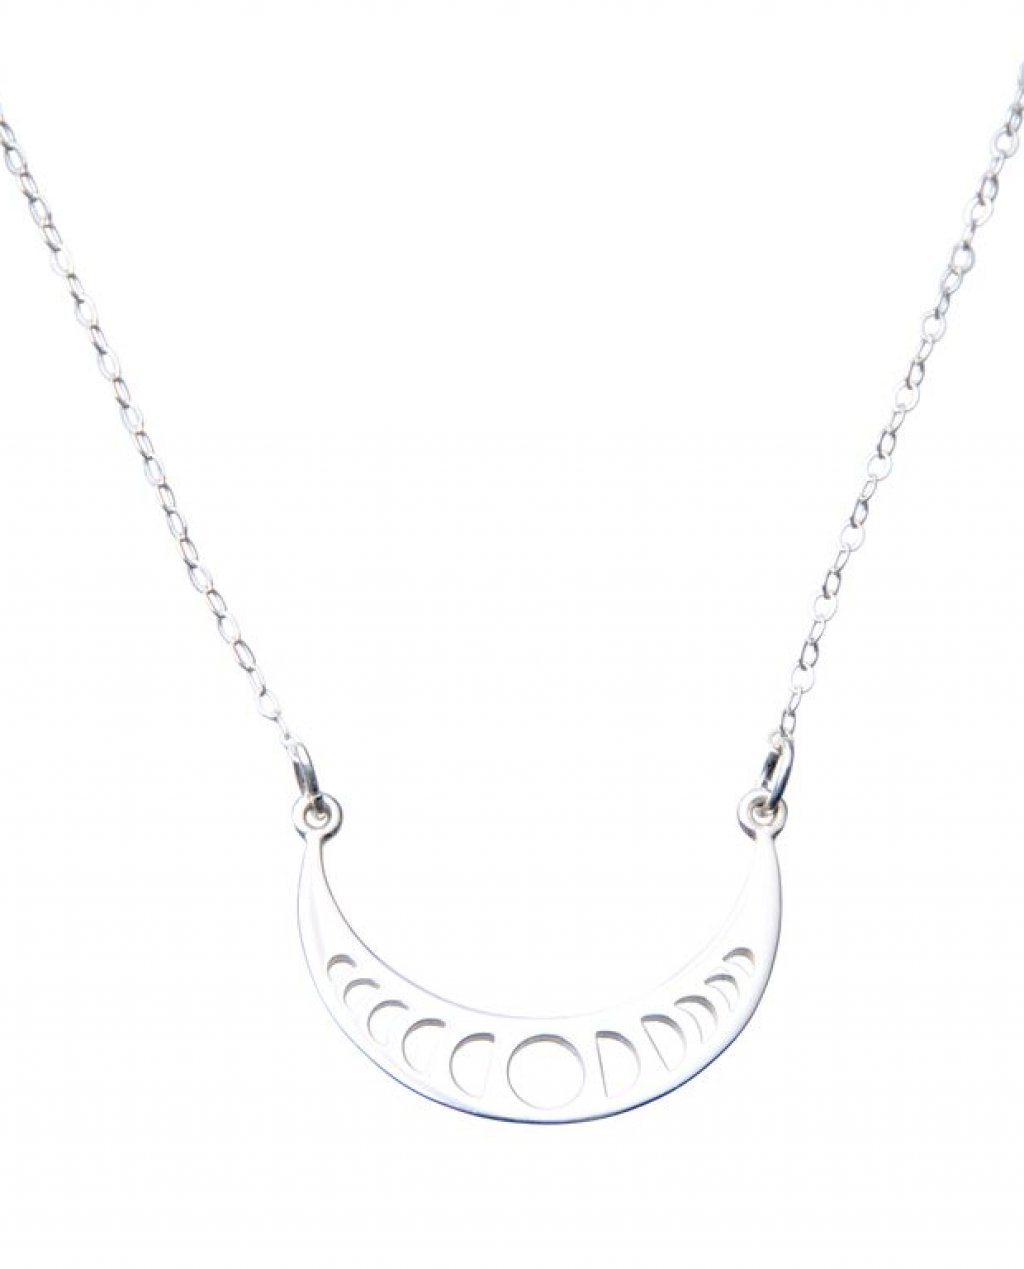 Pam Kerr Designs | Moon Phase Pendant Necklace | Sterling Silver